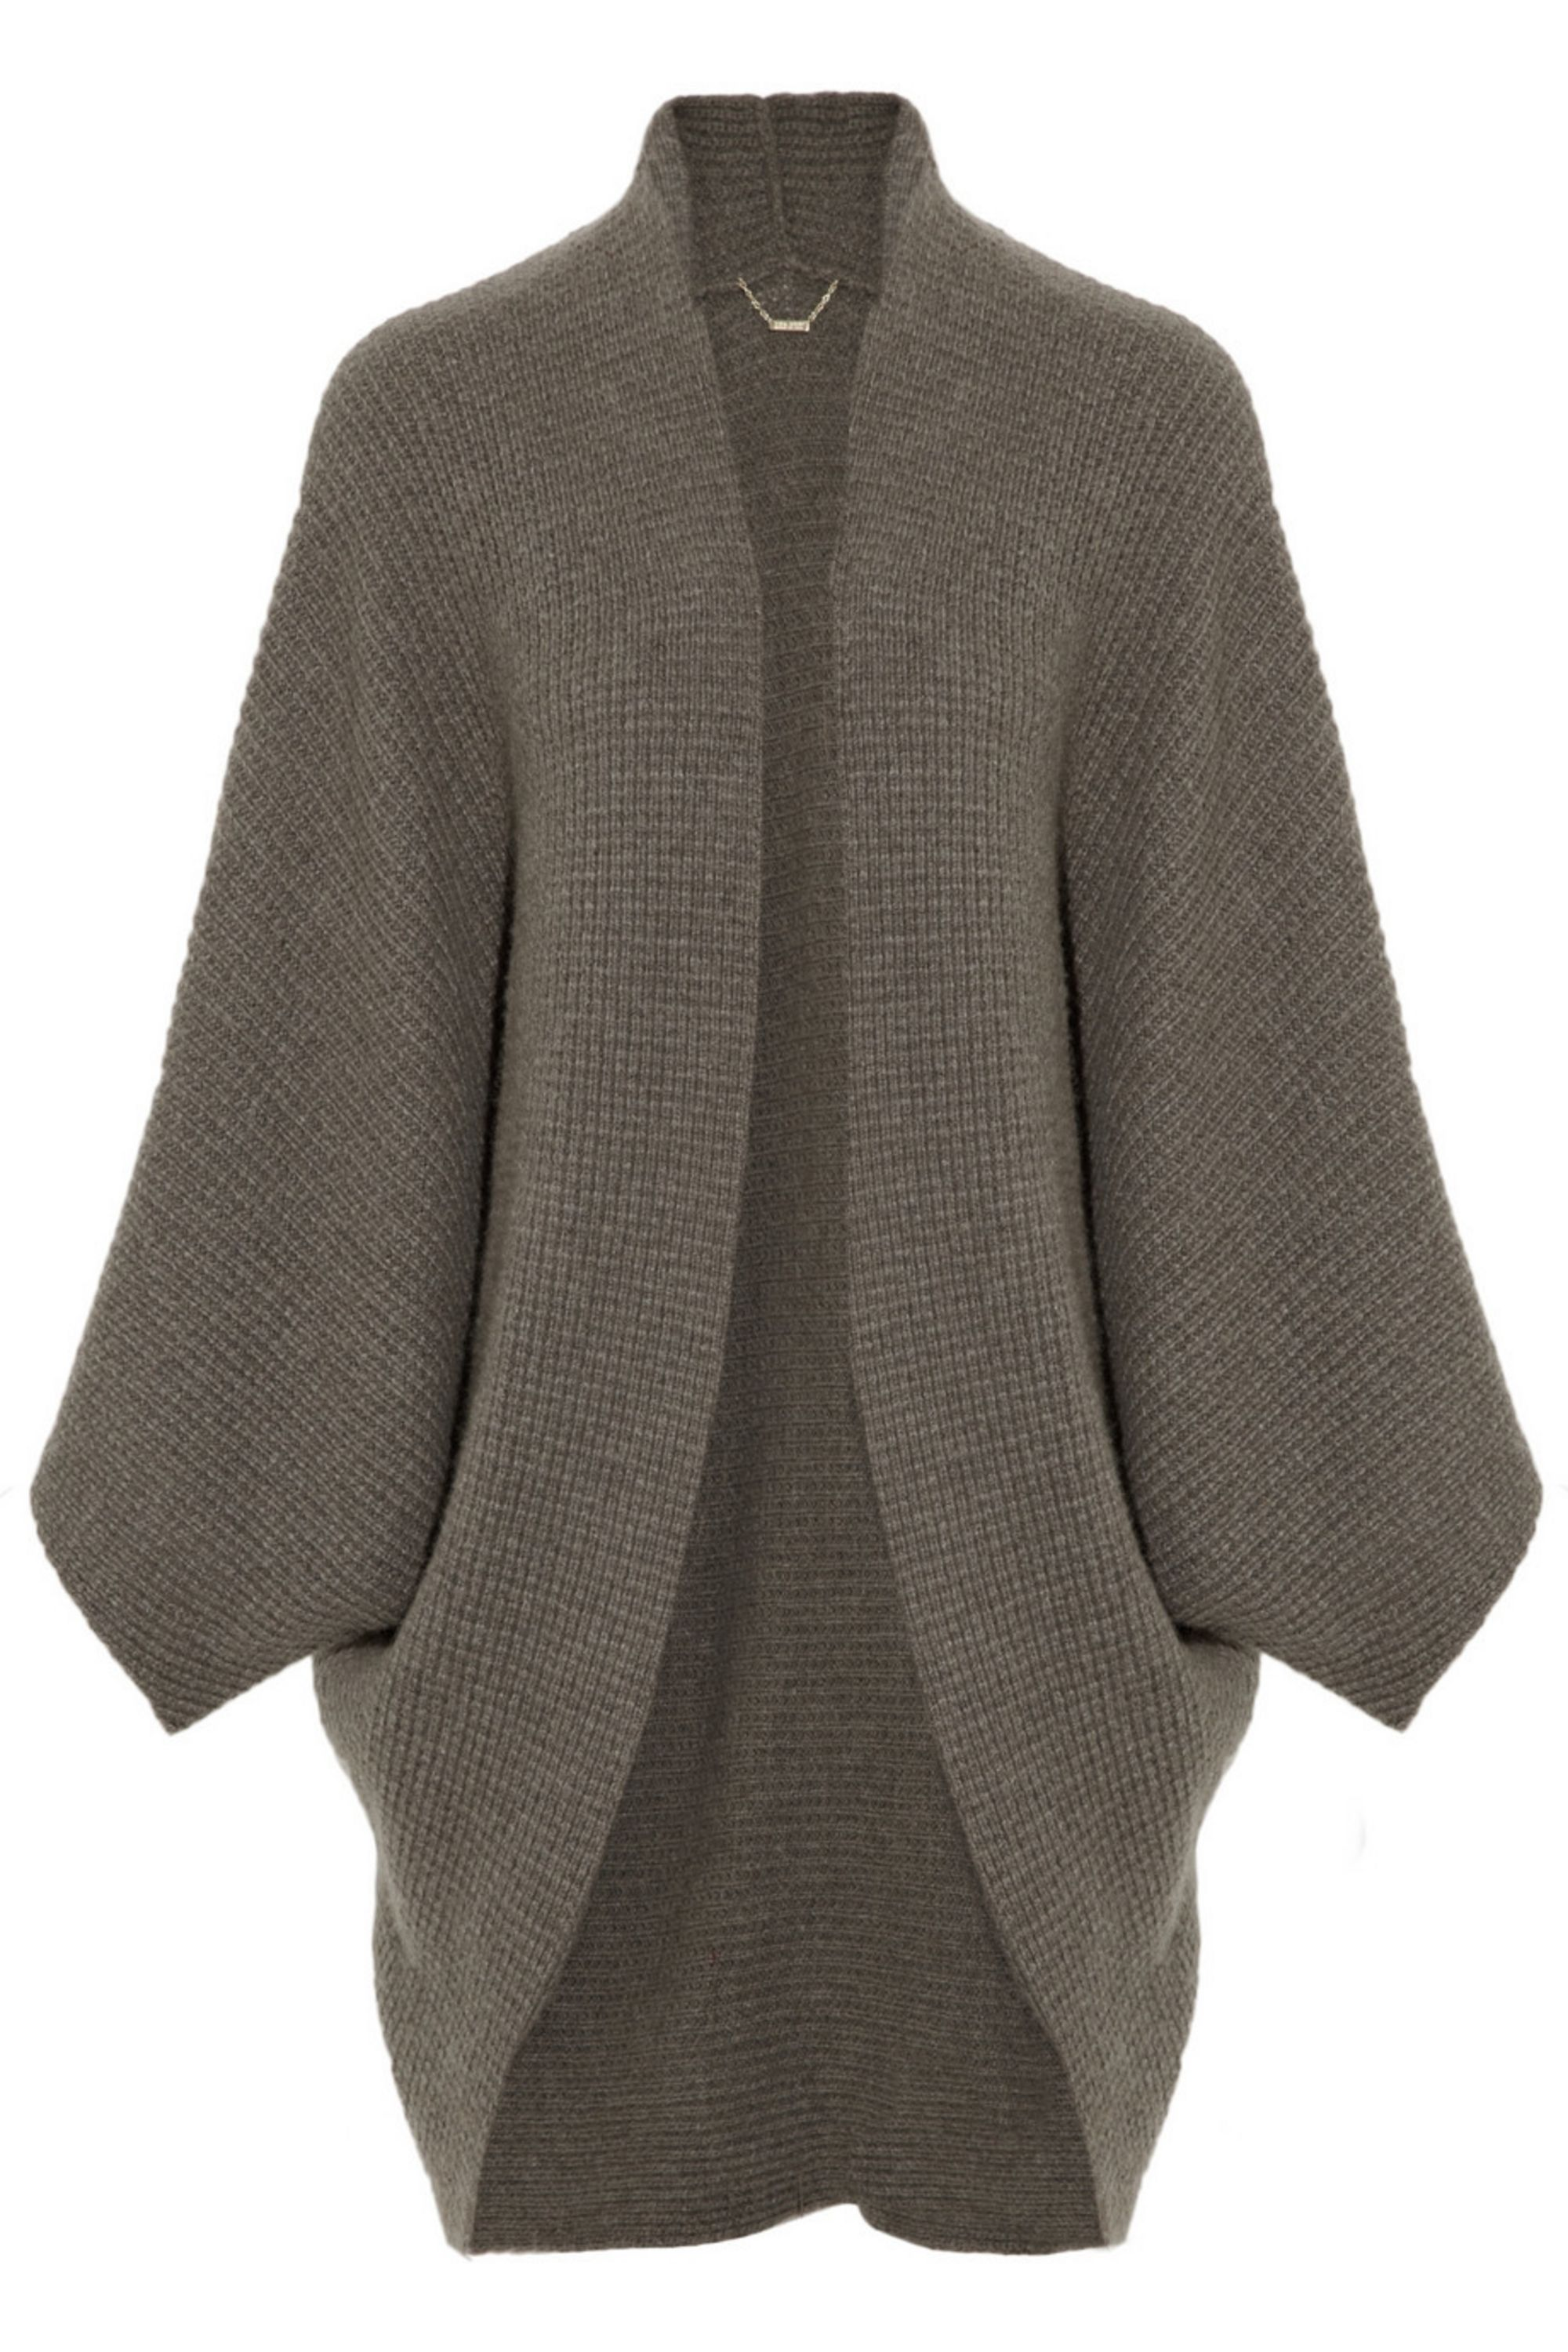 Libby cashmere cocoon cardigan